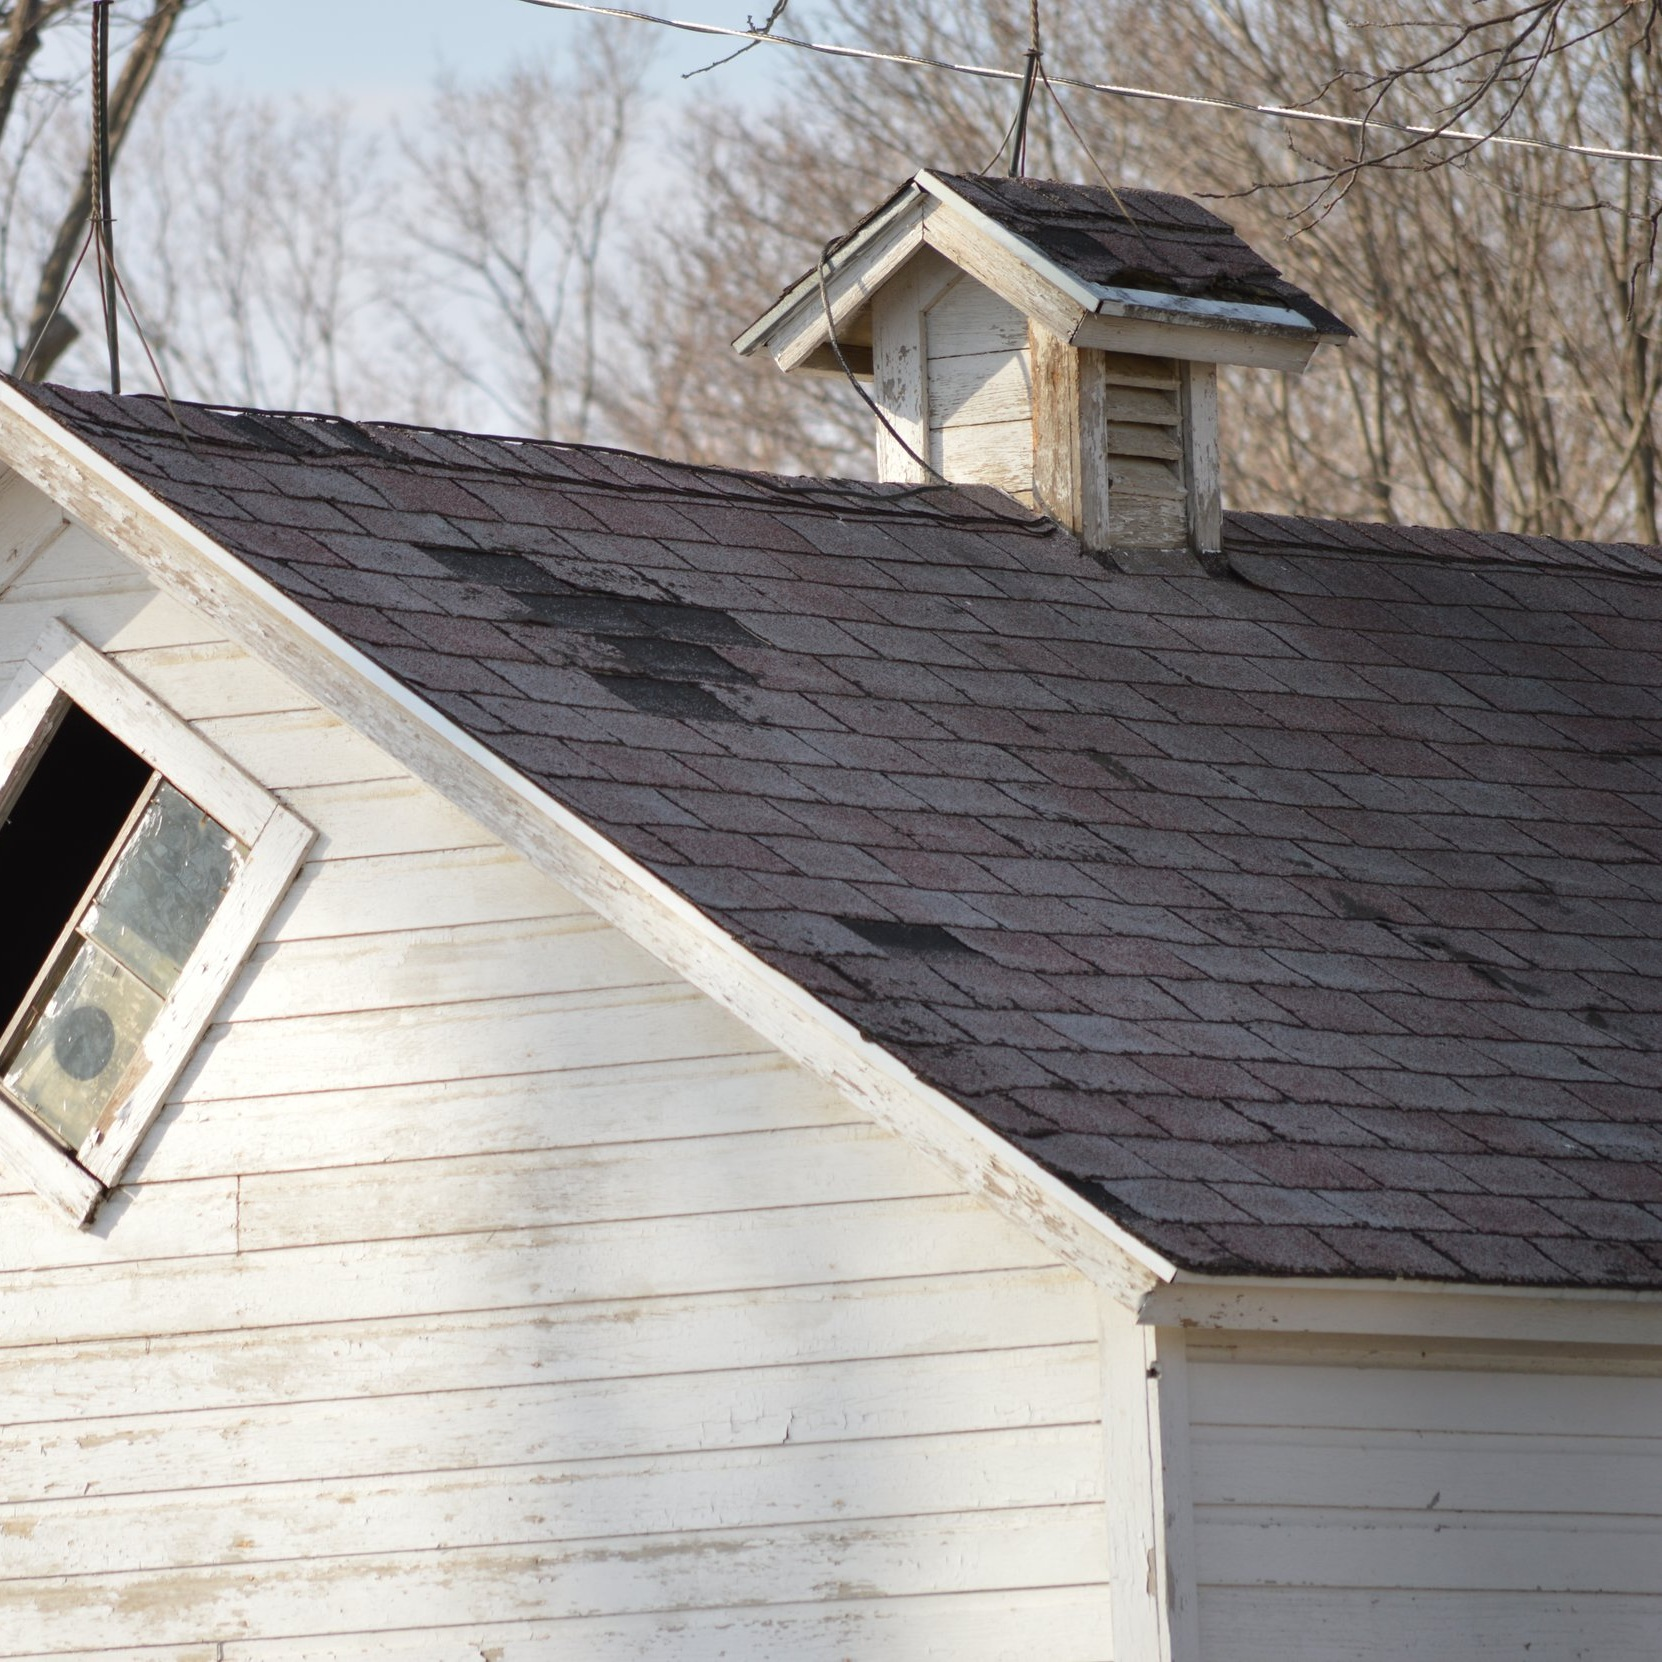 We can replace your roof an paint your home exterior, as well!